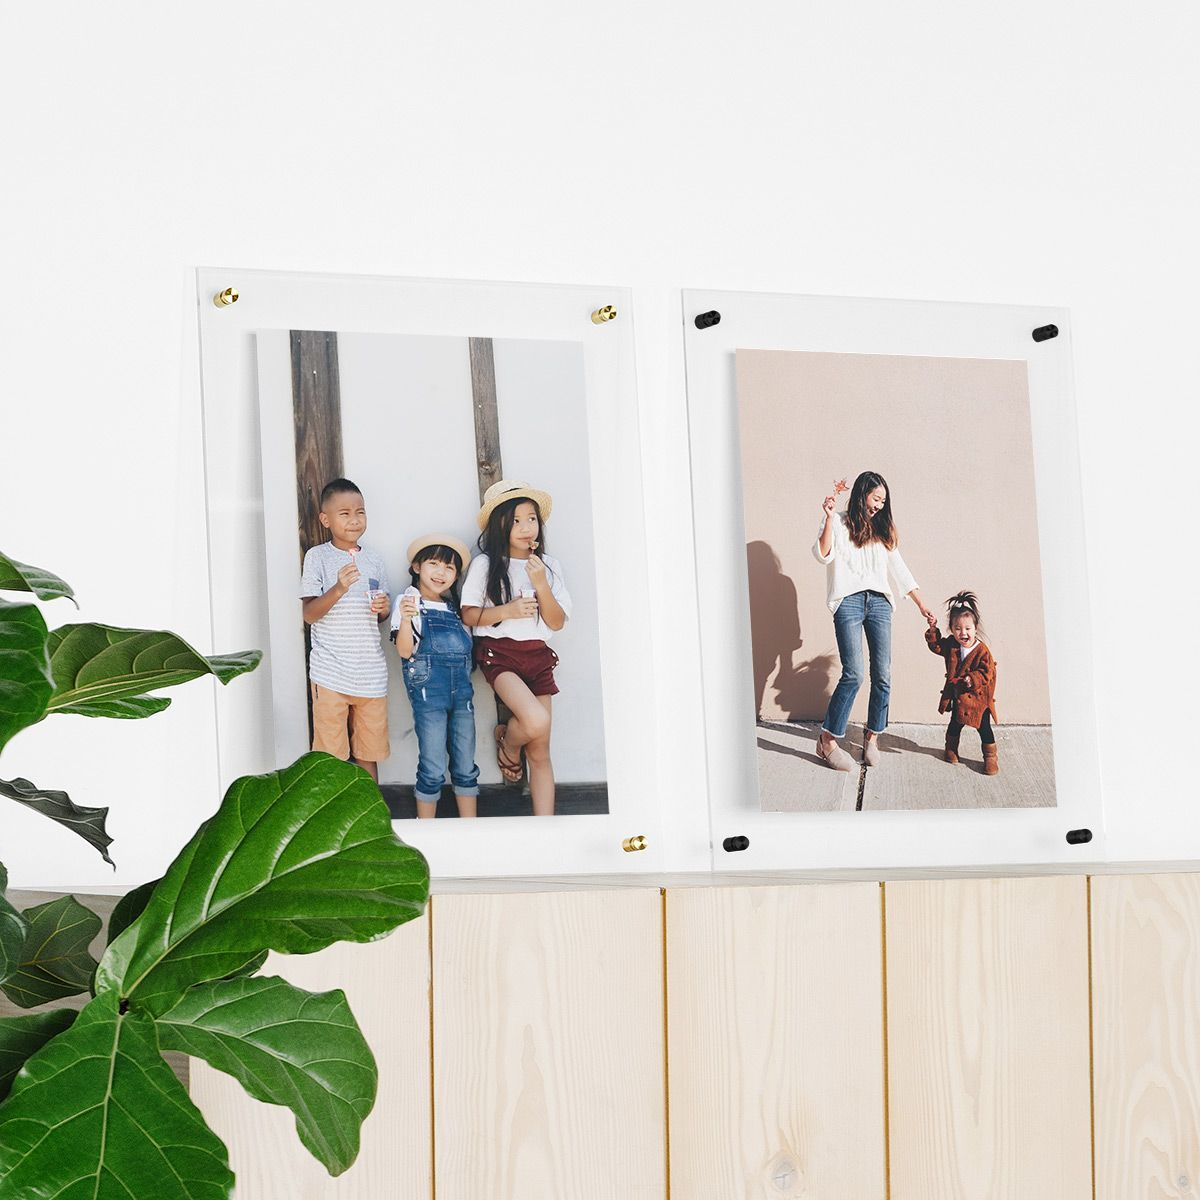 Acrylic Floating Frame By Artifact Uprising Floating Picture Frames Acrylic Picture Frames Floating Frame